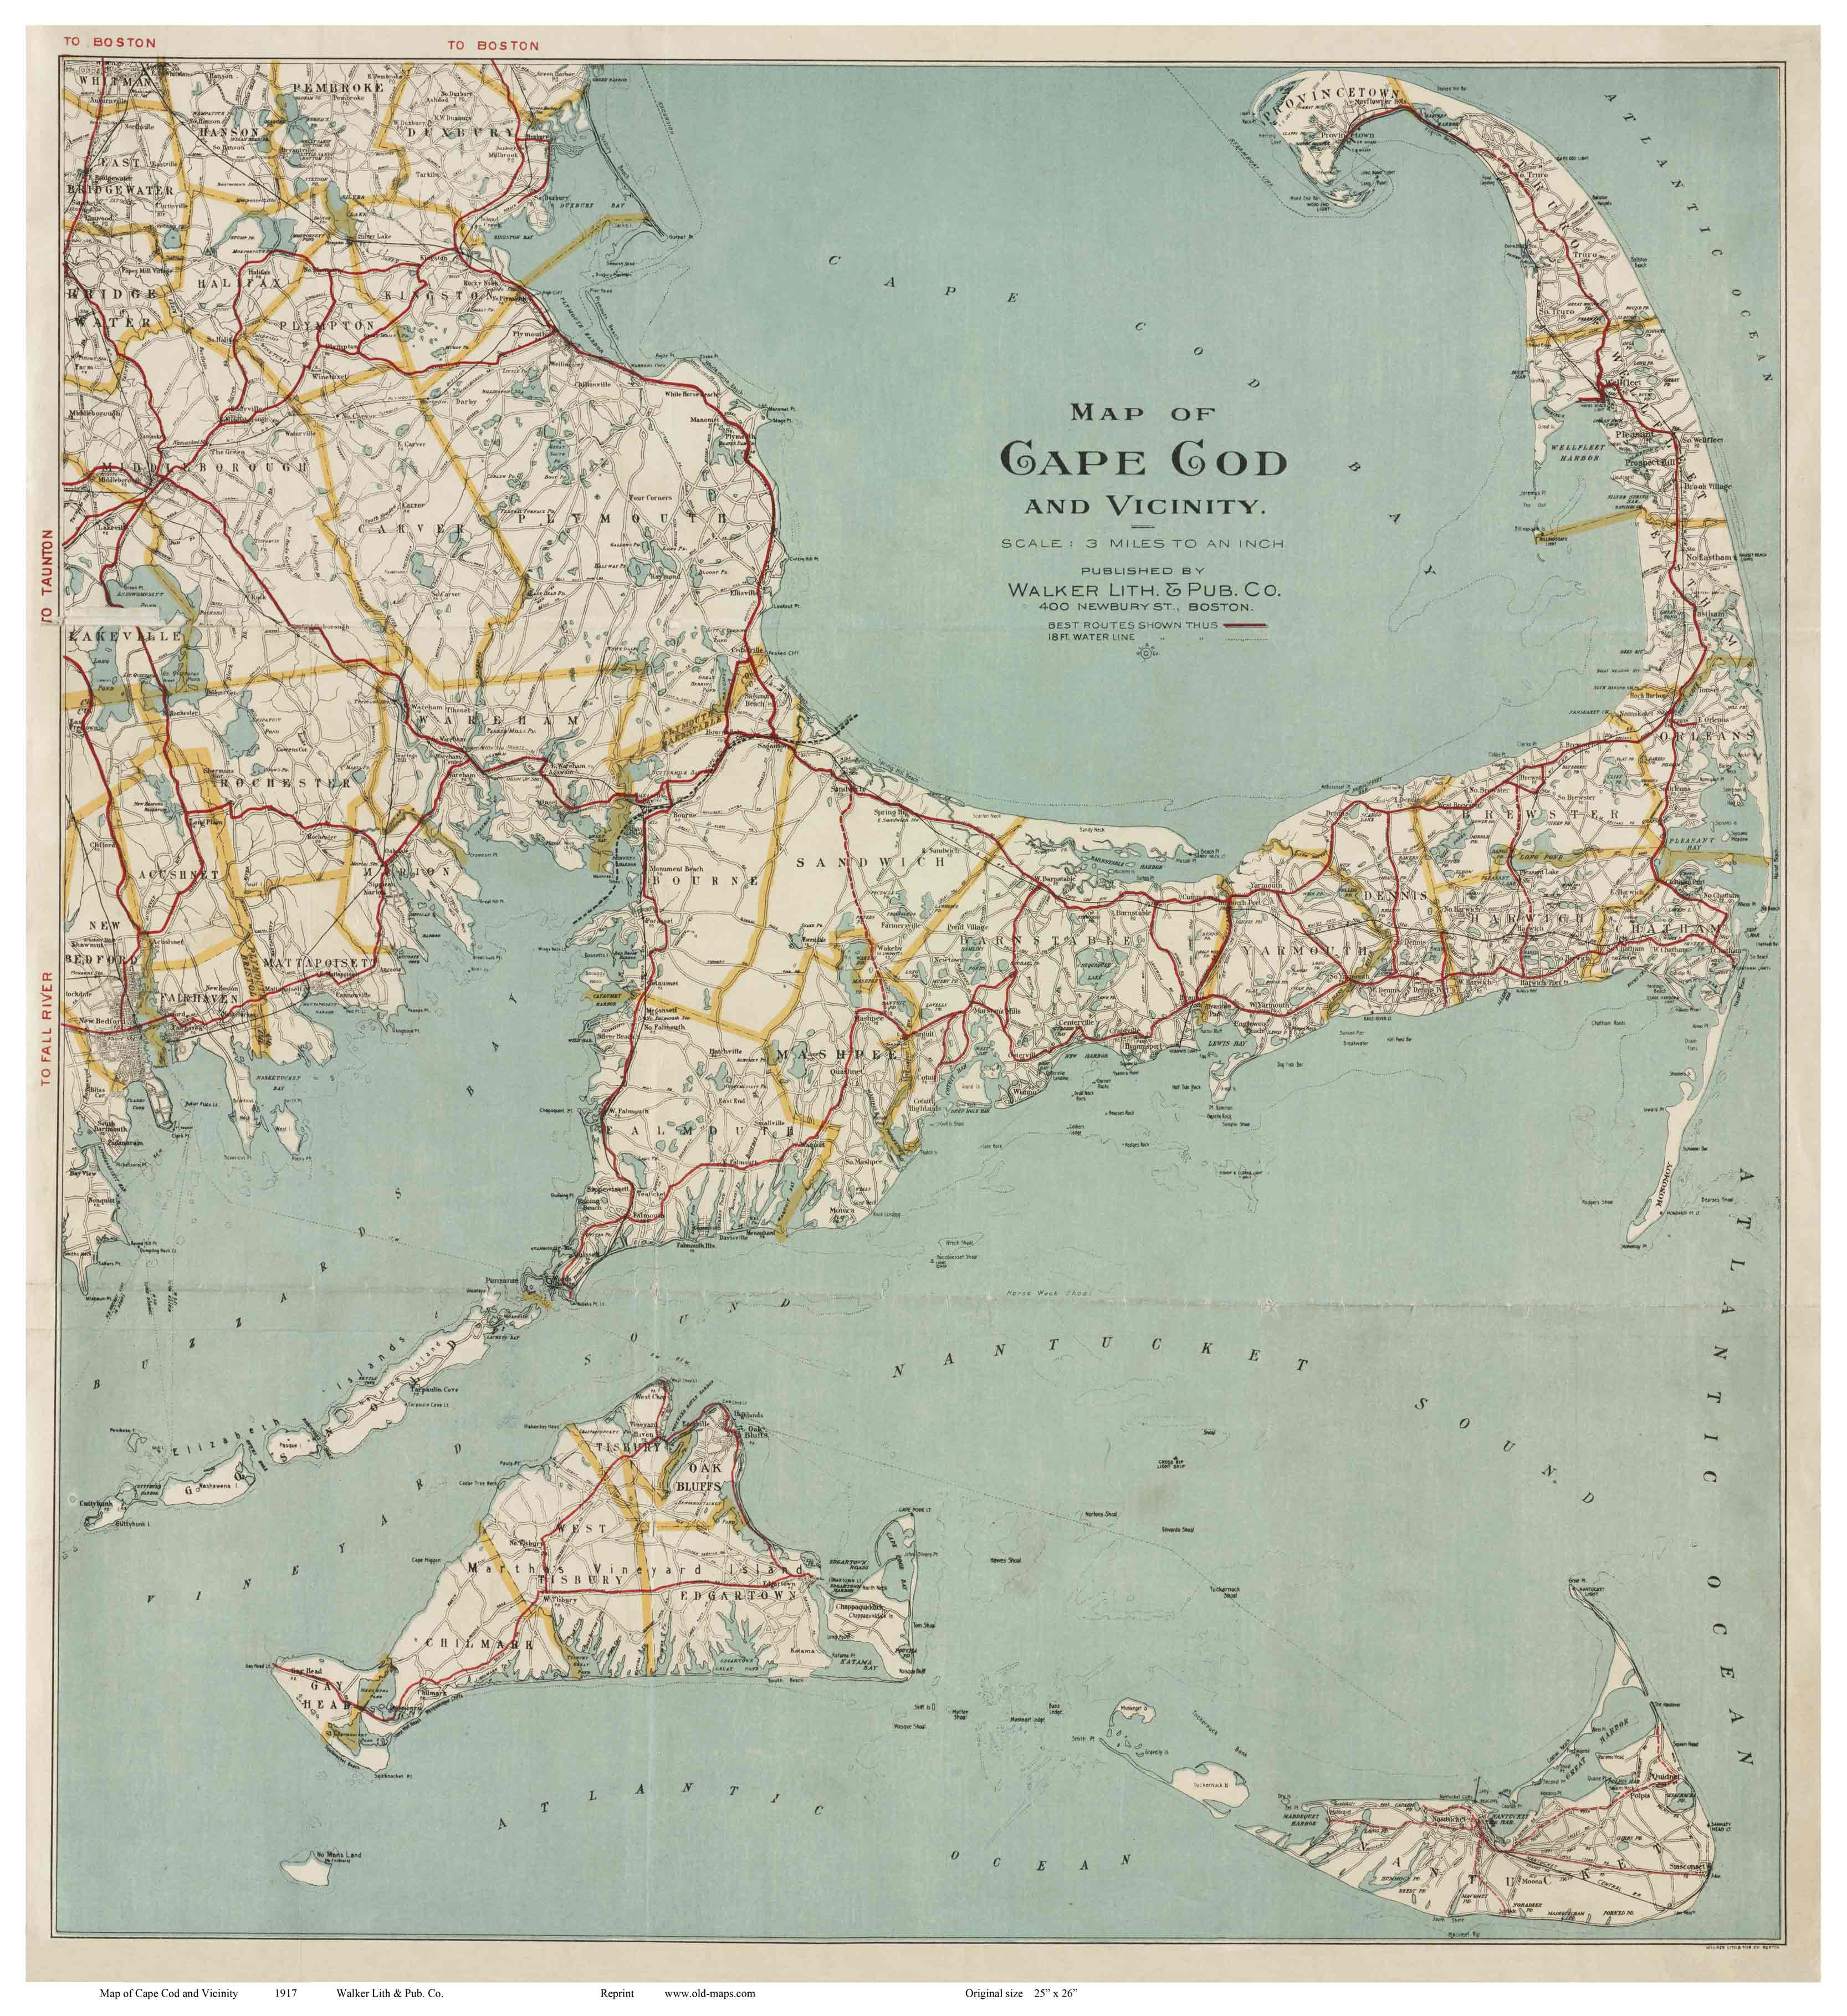 Old Map of Cape Cod 1917 Walker reprint